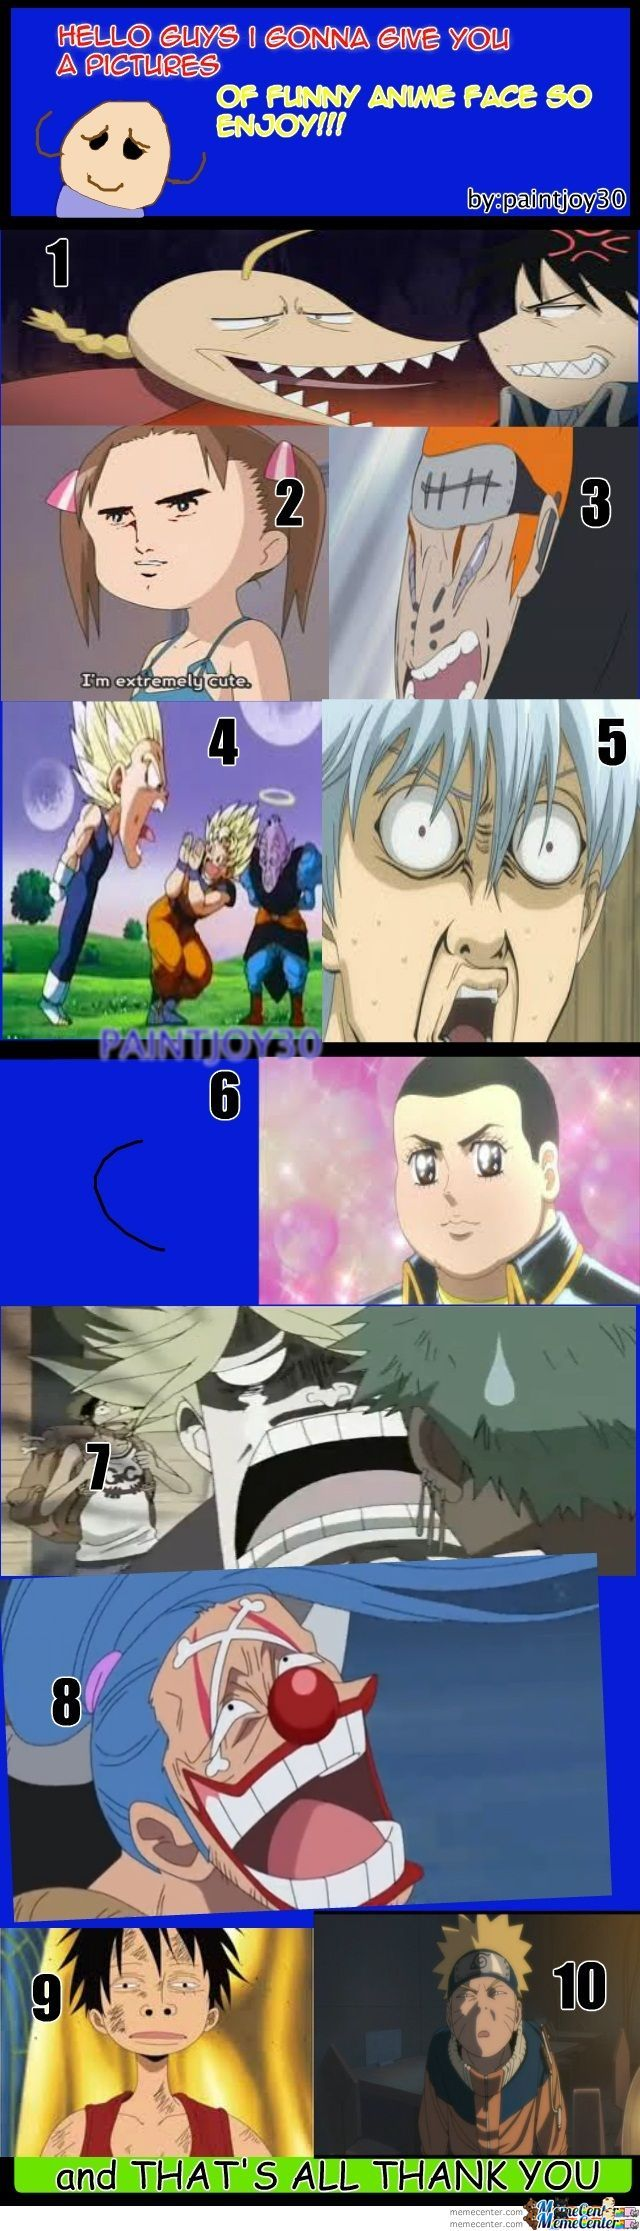 Anime Funny Faces